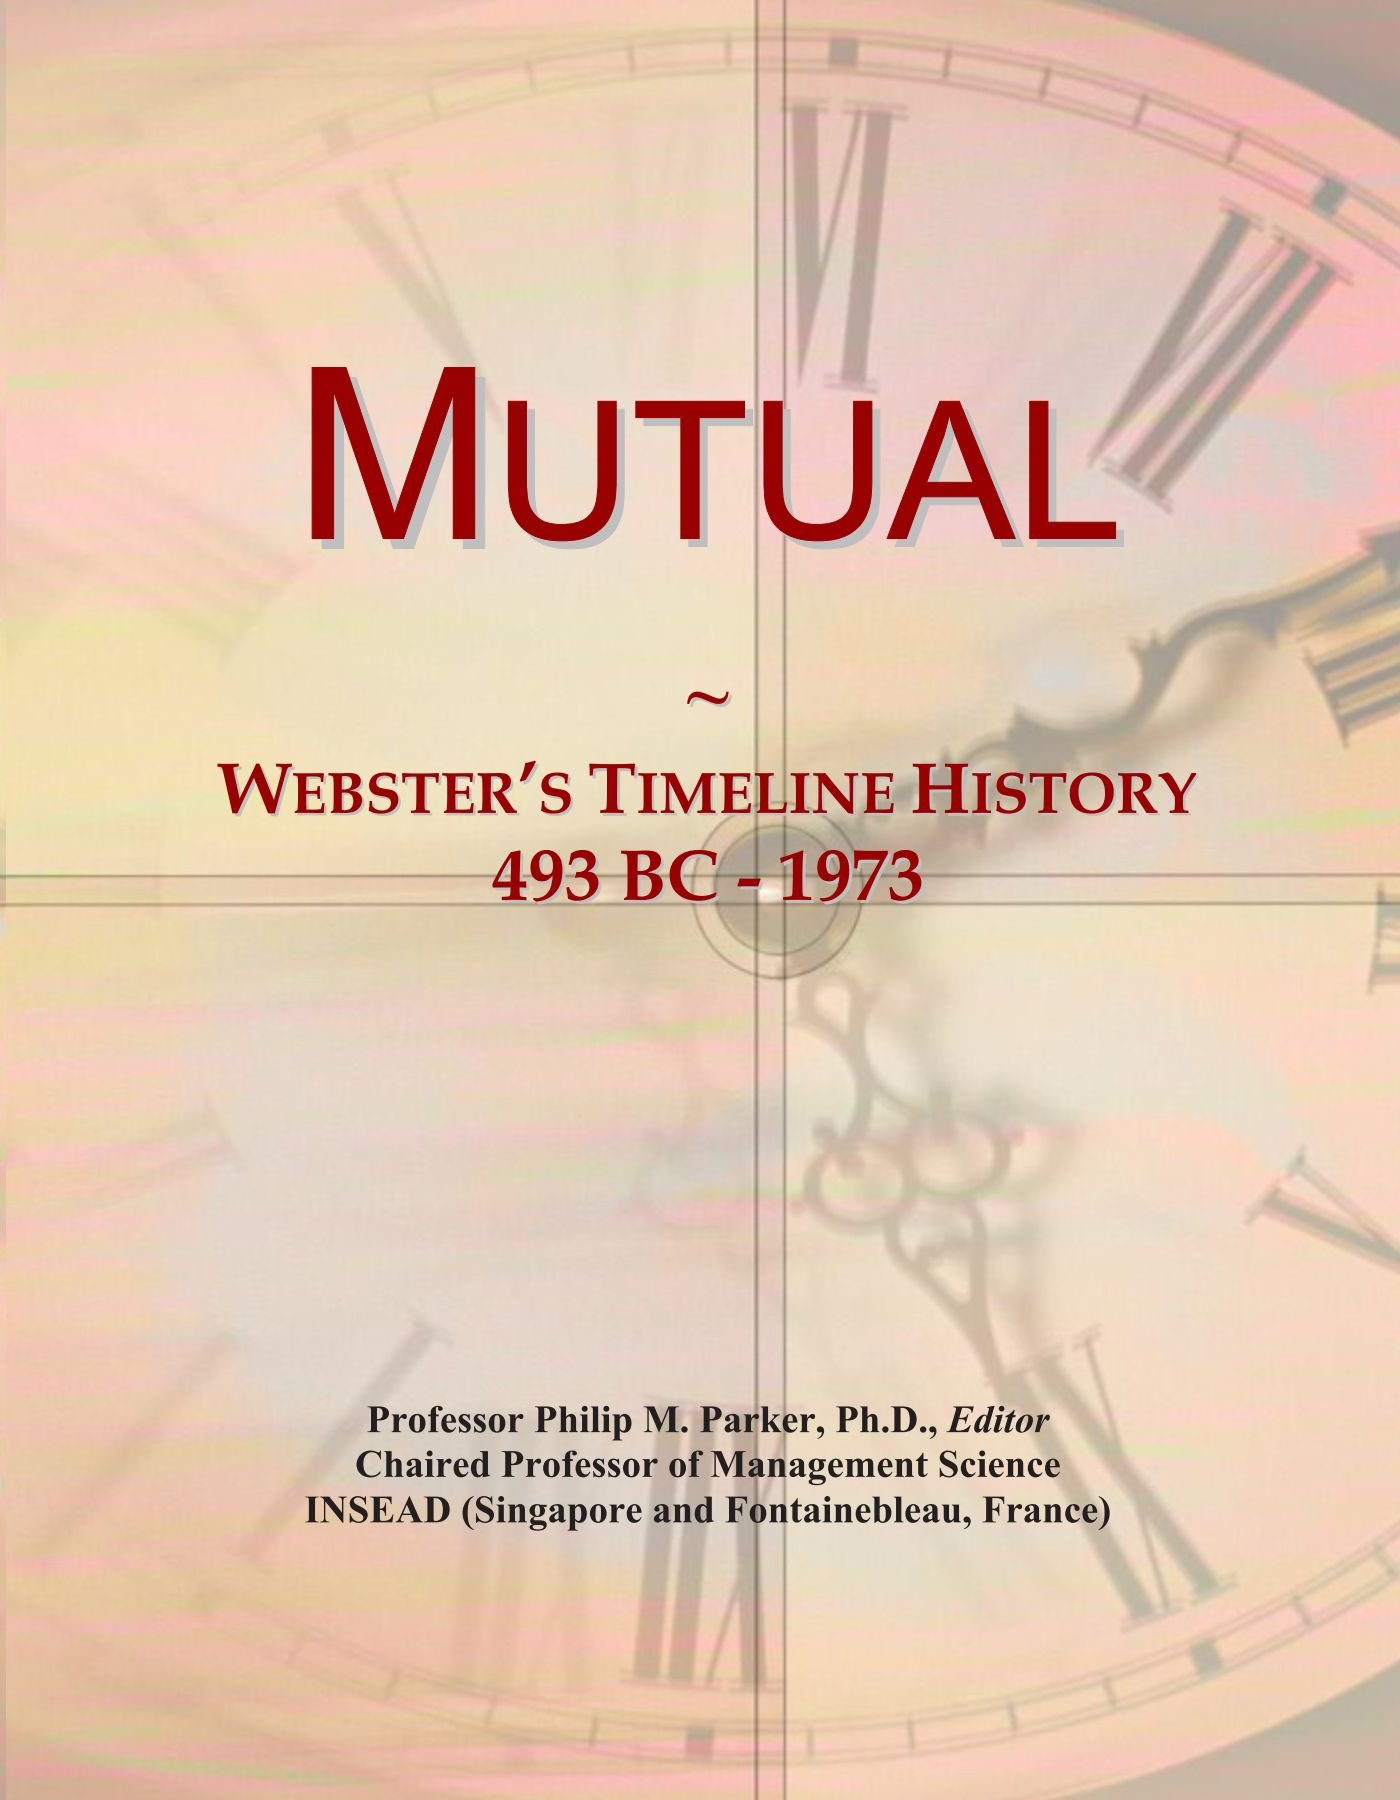 Mutual: Webster's Timeline History, 493 BC - 1973 ebook